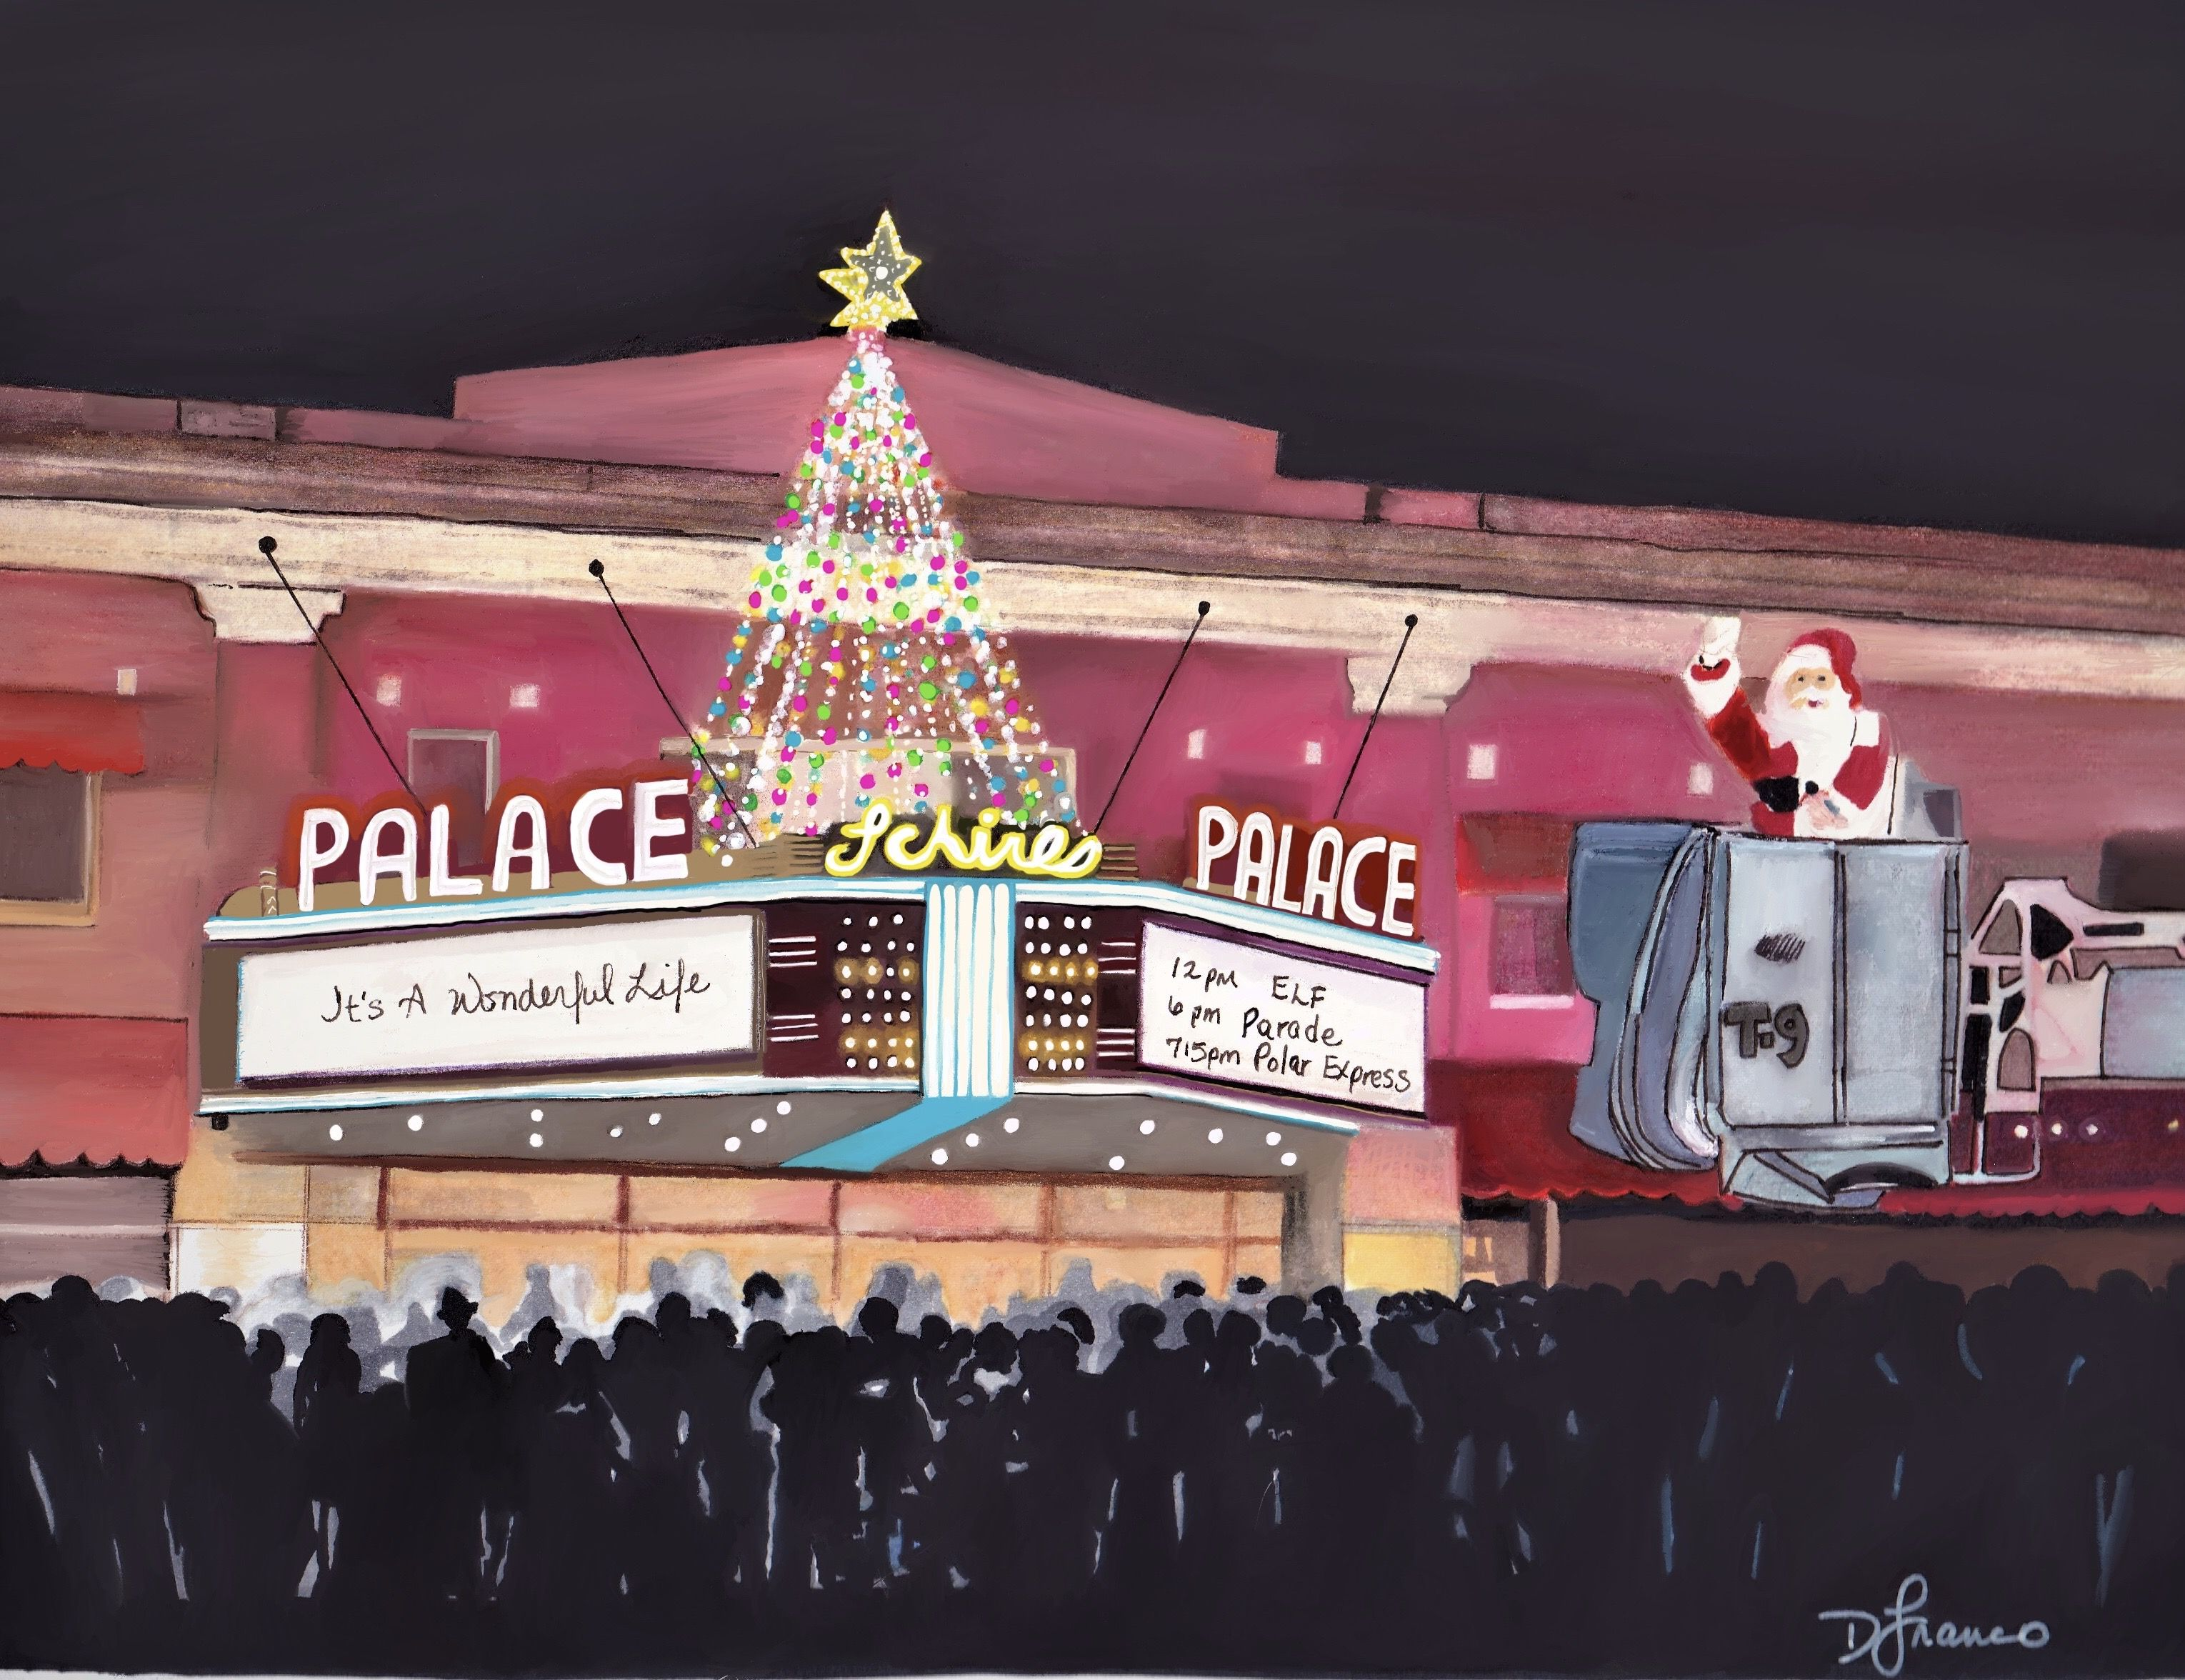 Christmas Eve Broadway Shows 2020 Pin by Deborah Franco on my art in 2020 | Broadway shows, Poler